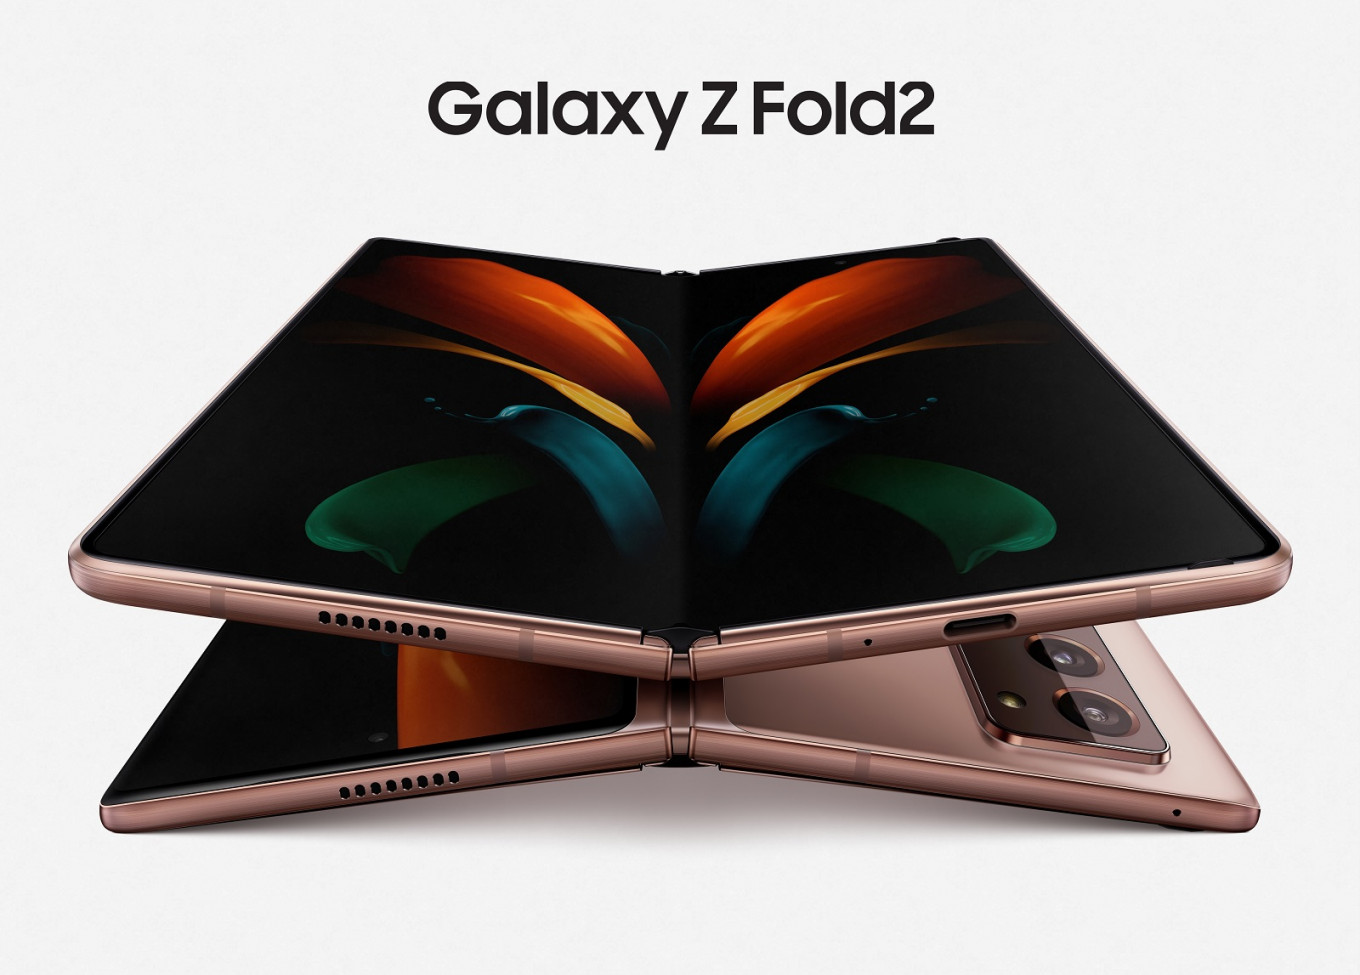 Samsung globally launches Galaxy Z Fold 2